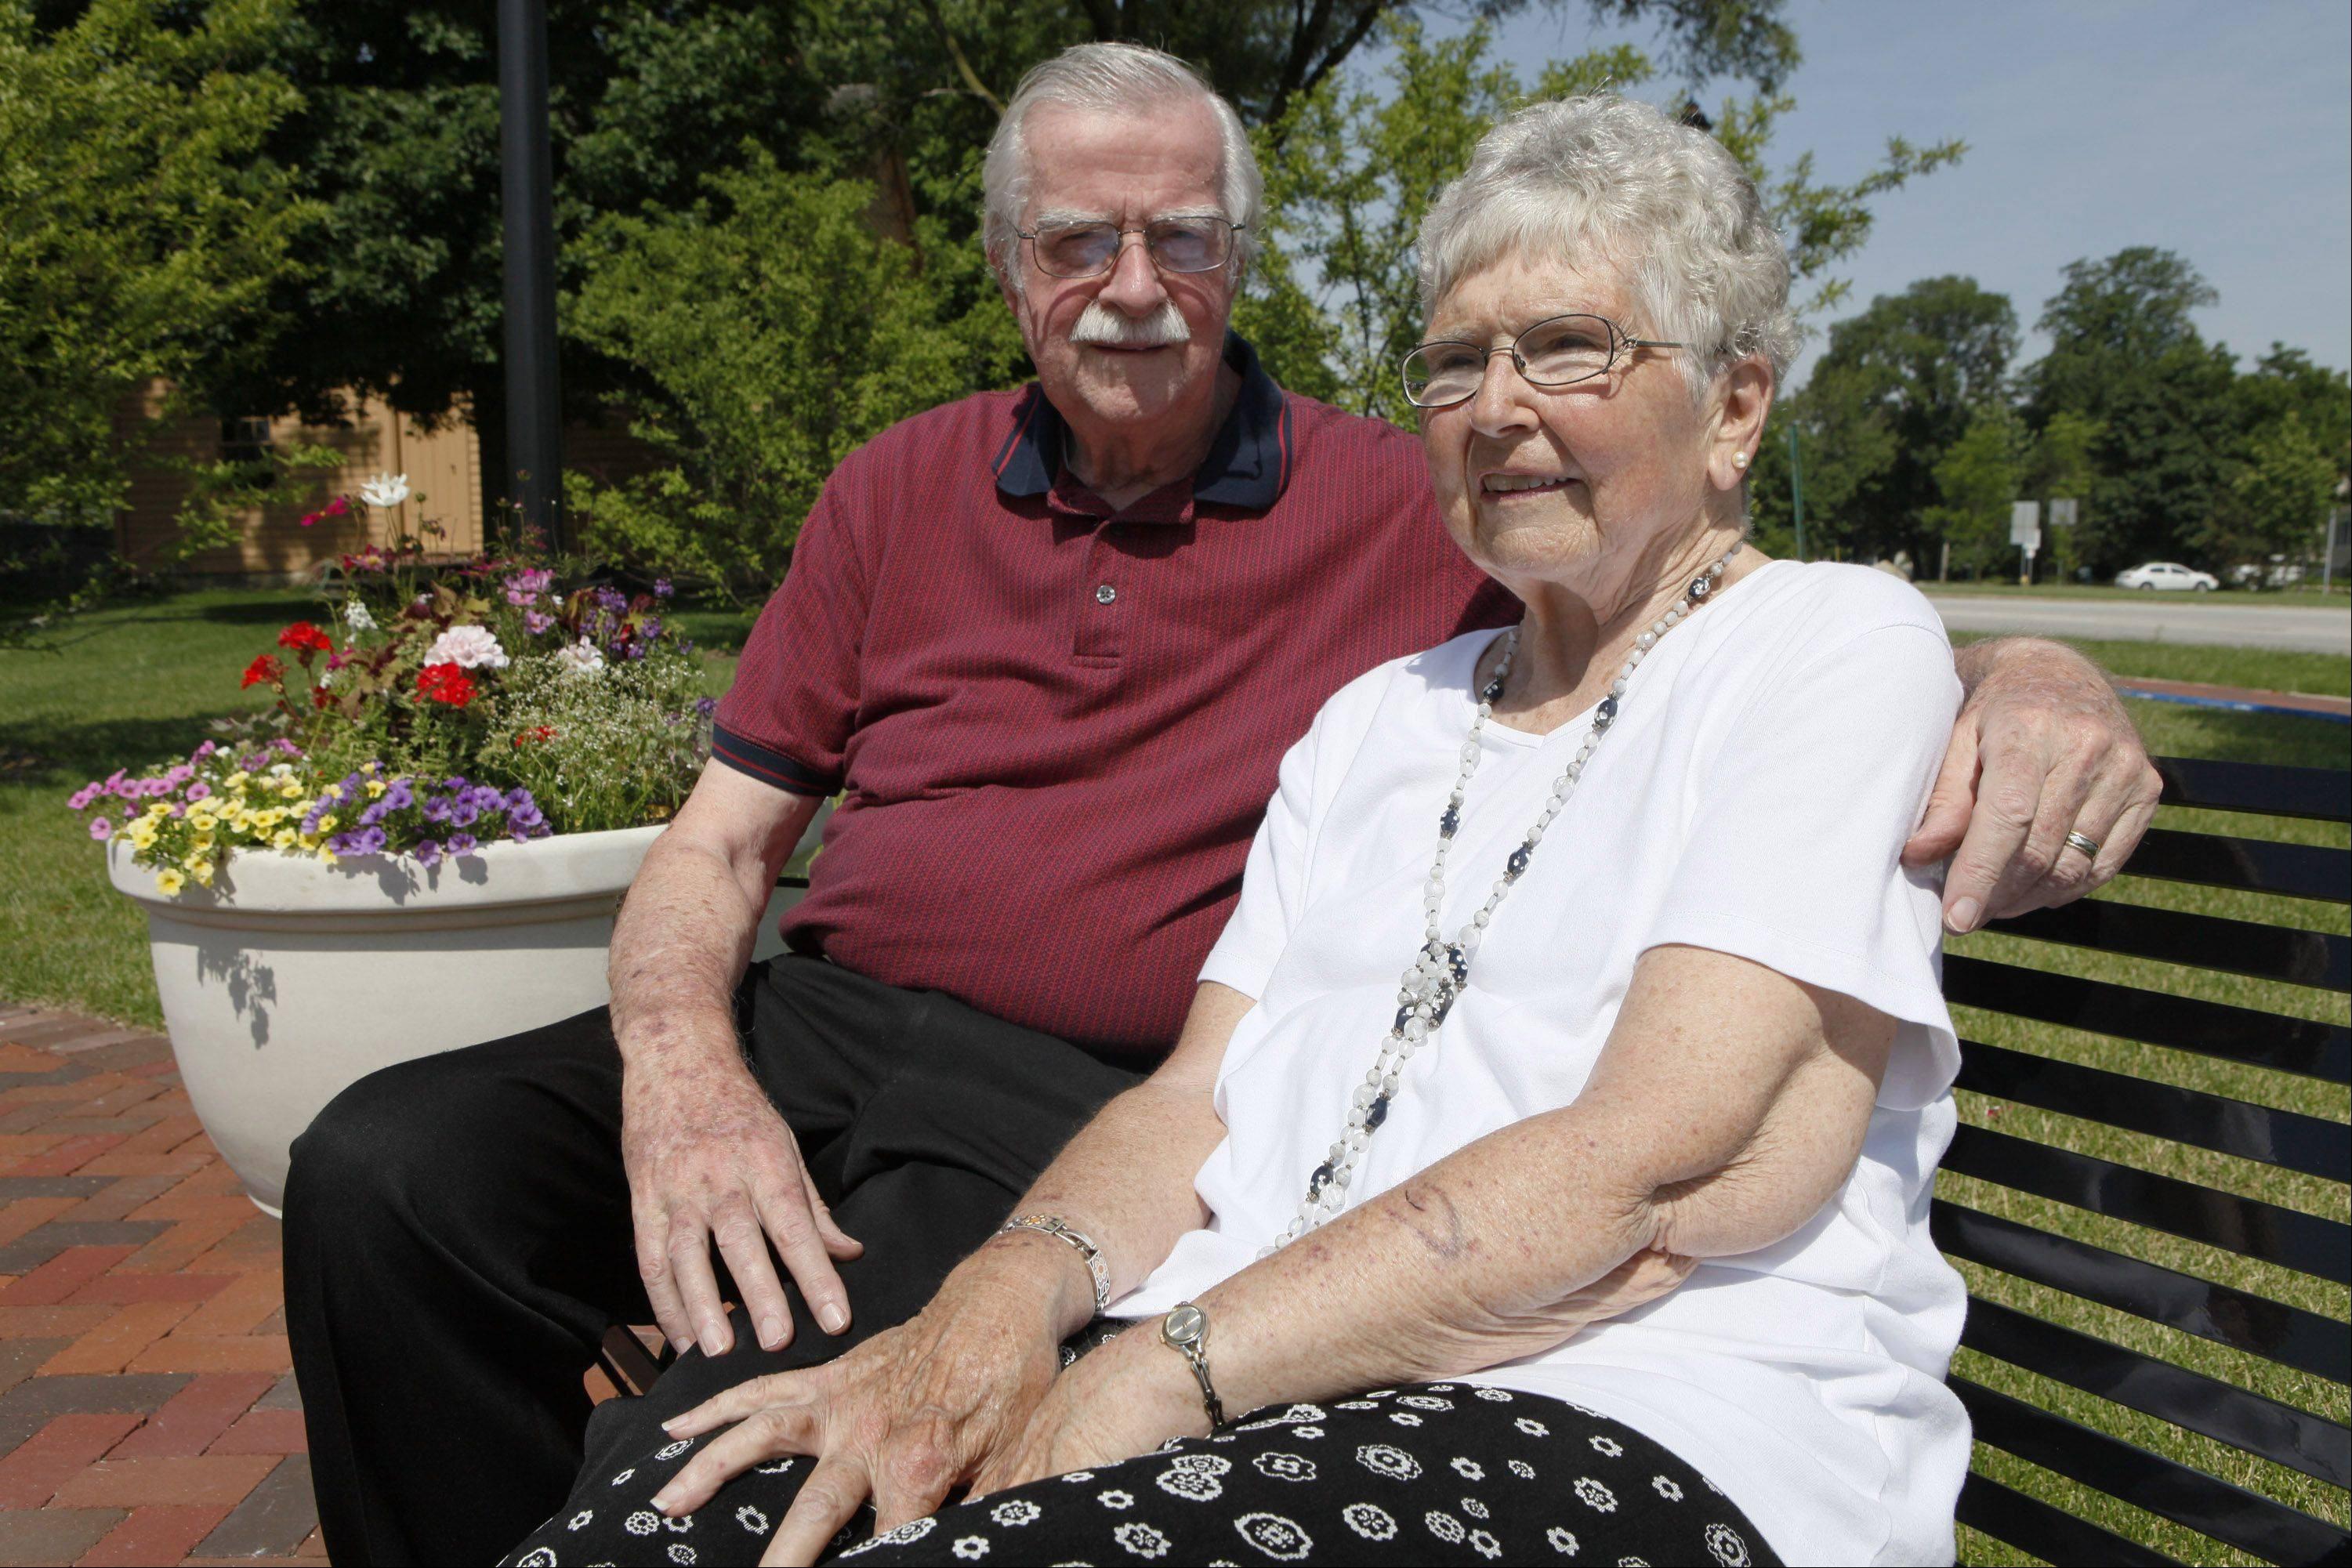 Glen Ellyn Historical Society members Doug and Ruthann Ward sit on a bench in Ward Plaza that will be dedicated in their honor on July 3. The plaza is part of the Glen Ellyn History Park, for which the Wards worked long and hard to make a reality.